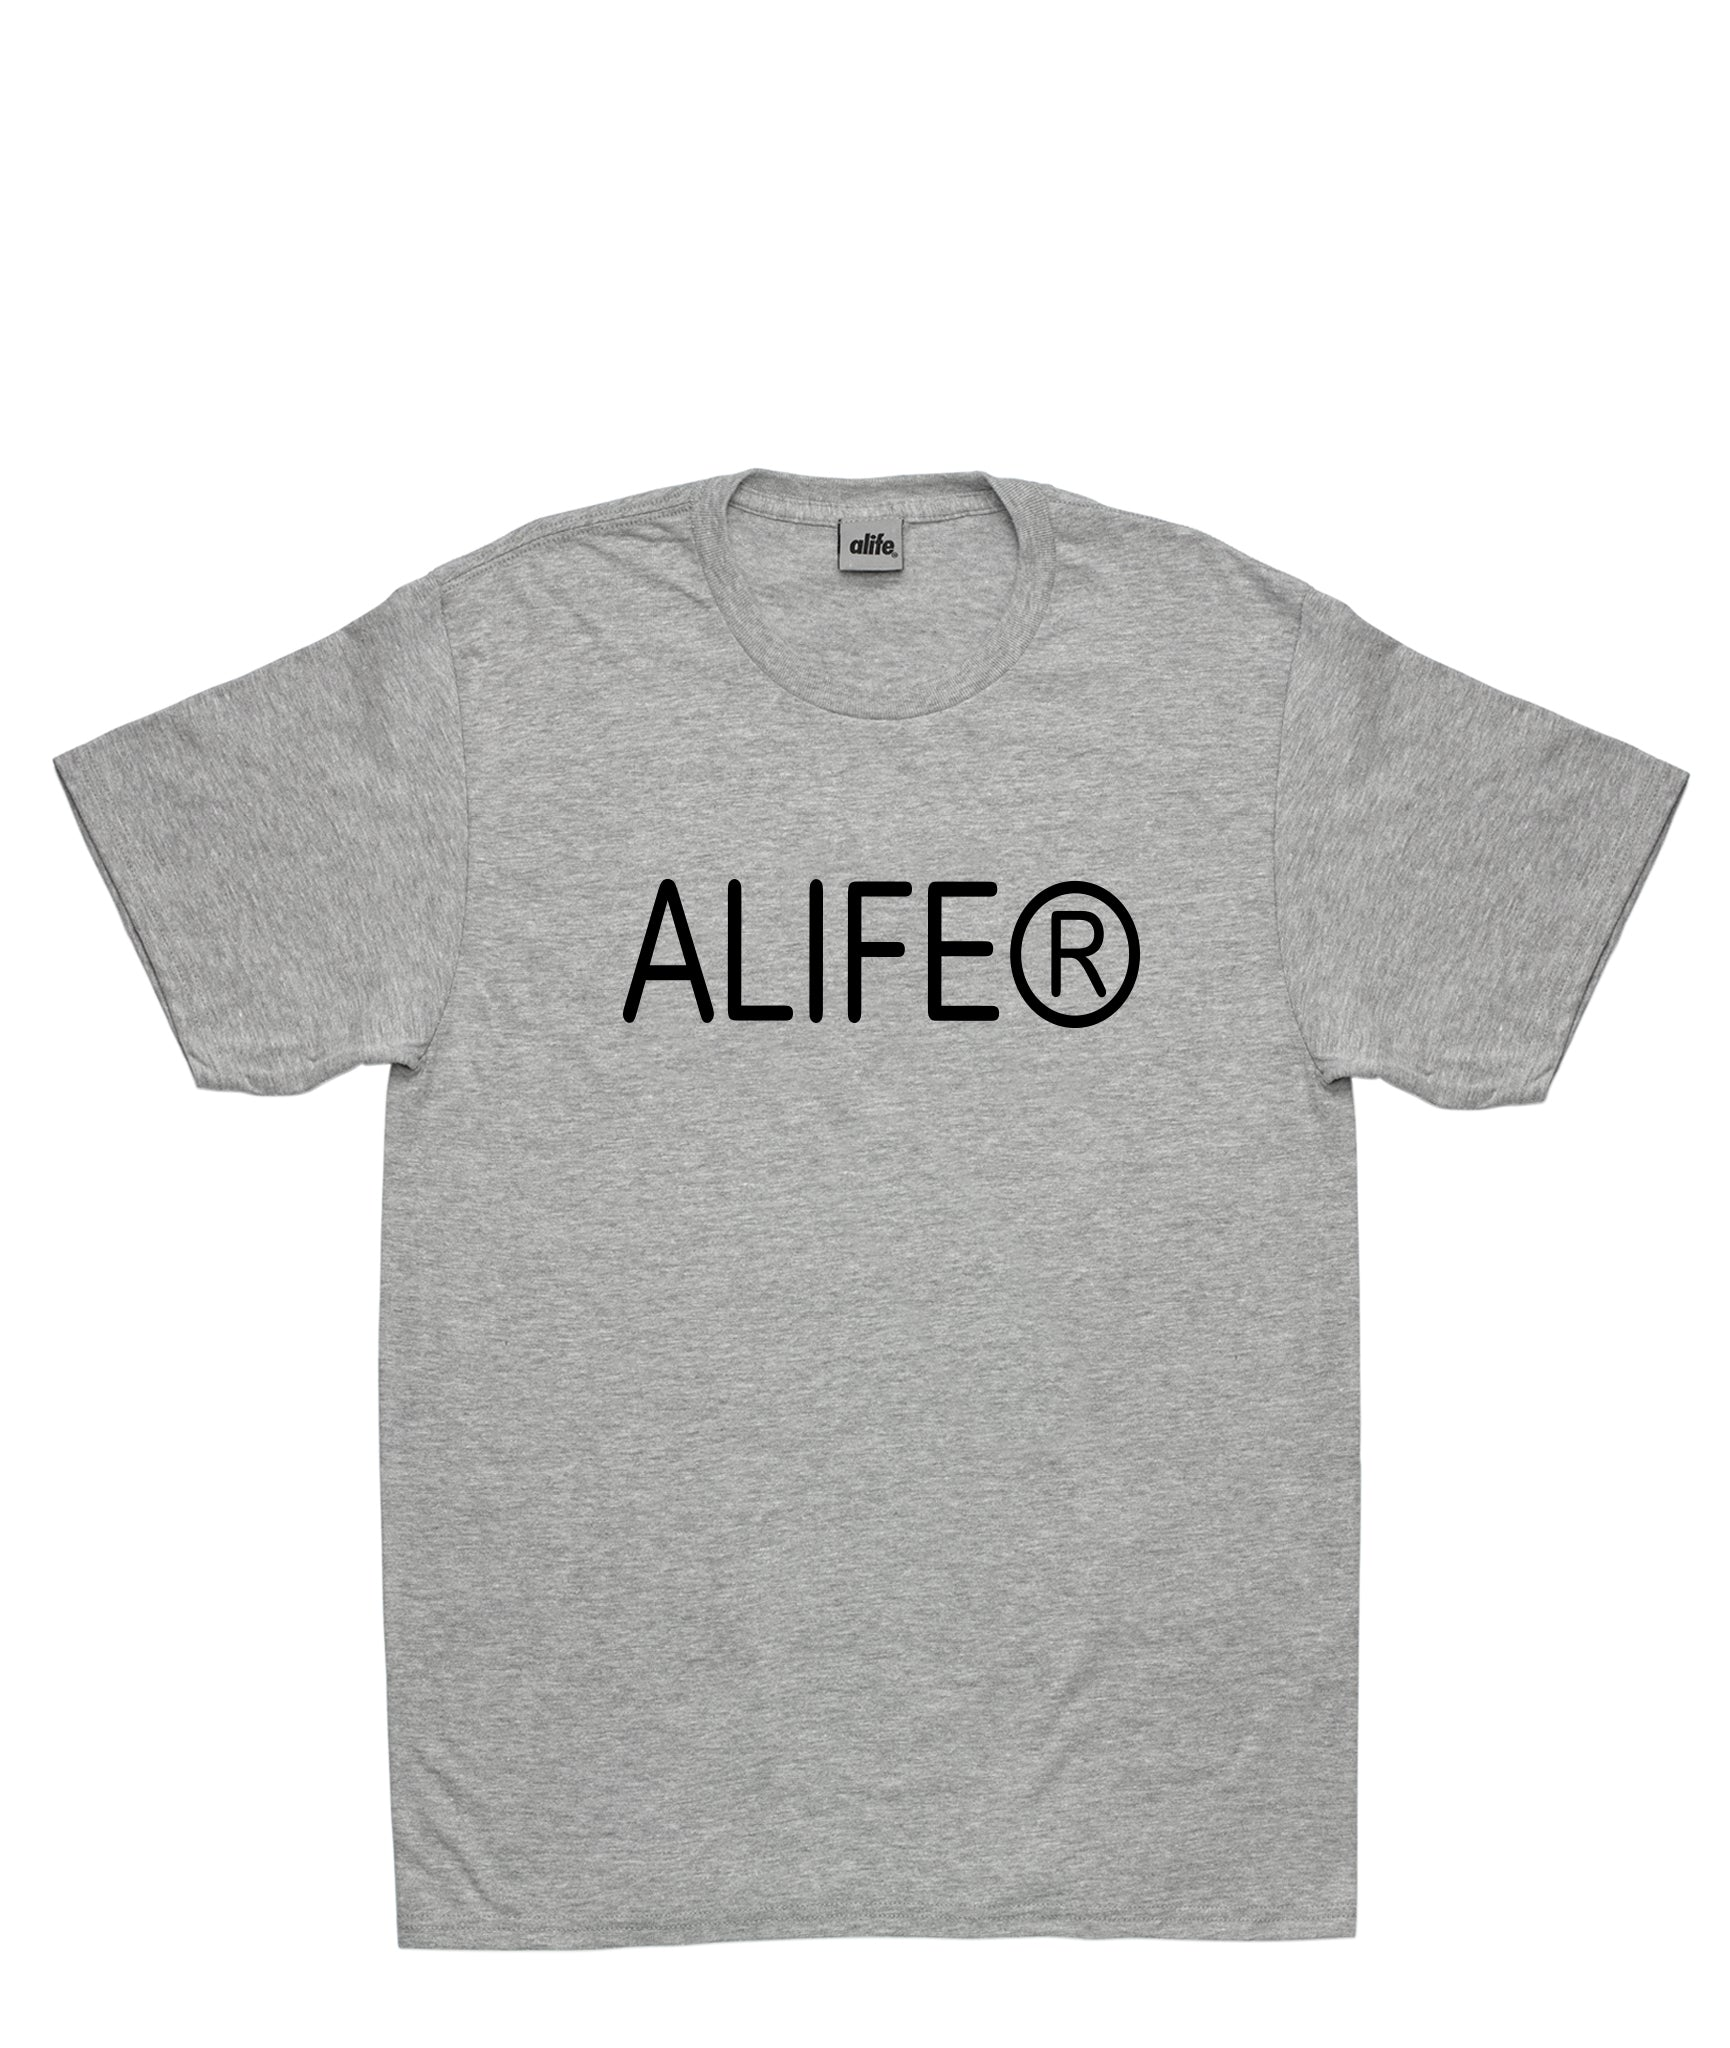 Alife Today Series Tee